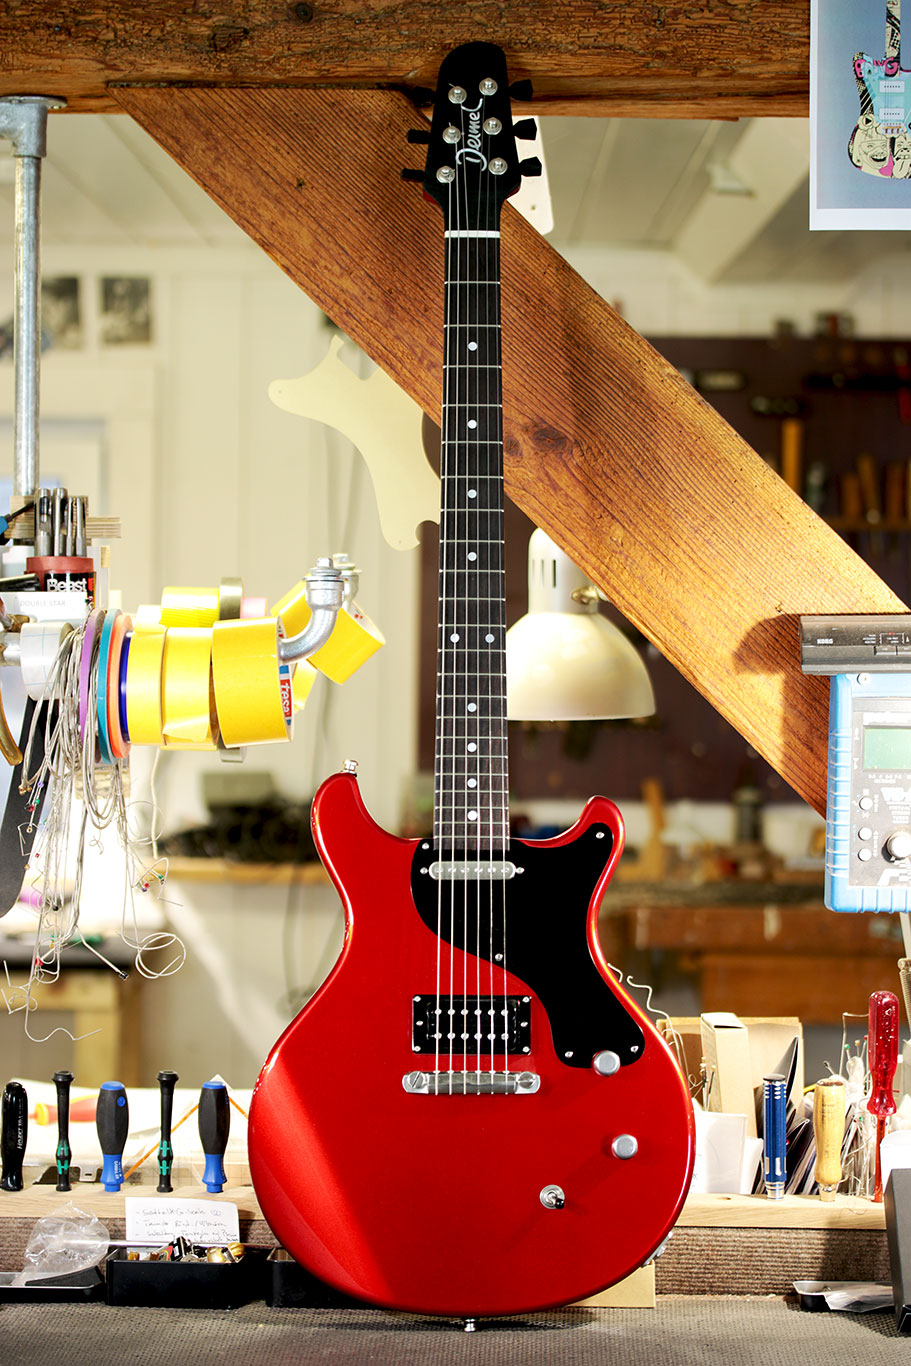 Deimel Doublestar RawTone »Candy Apple Red«